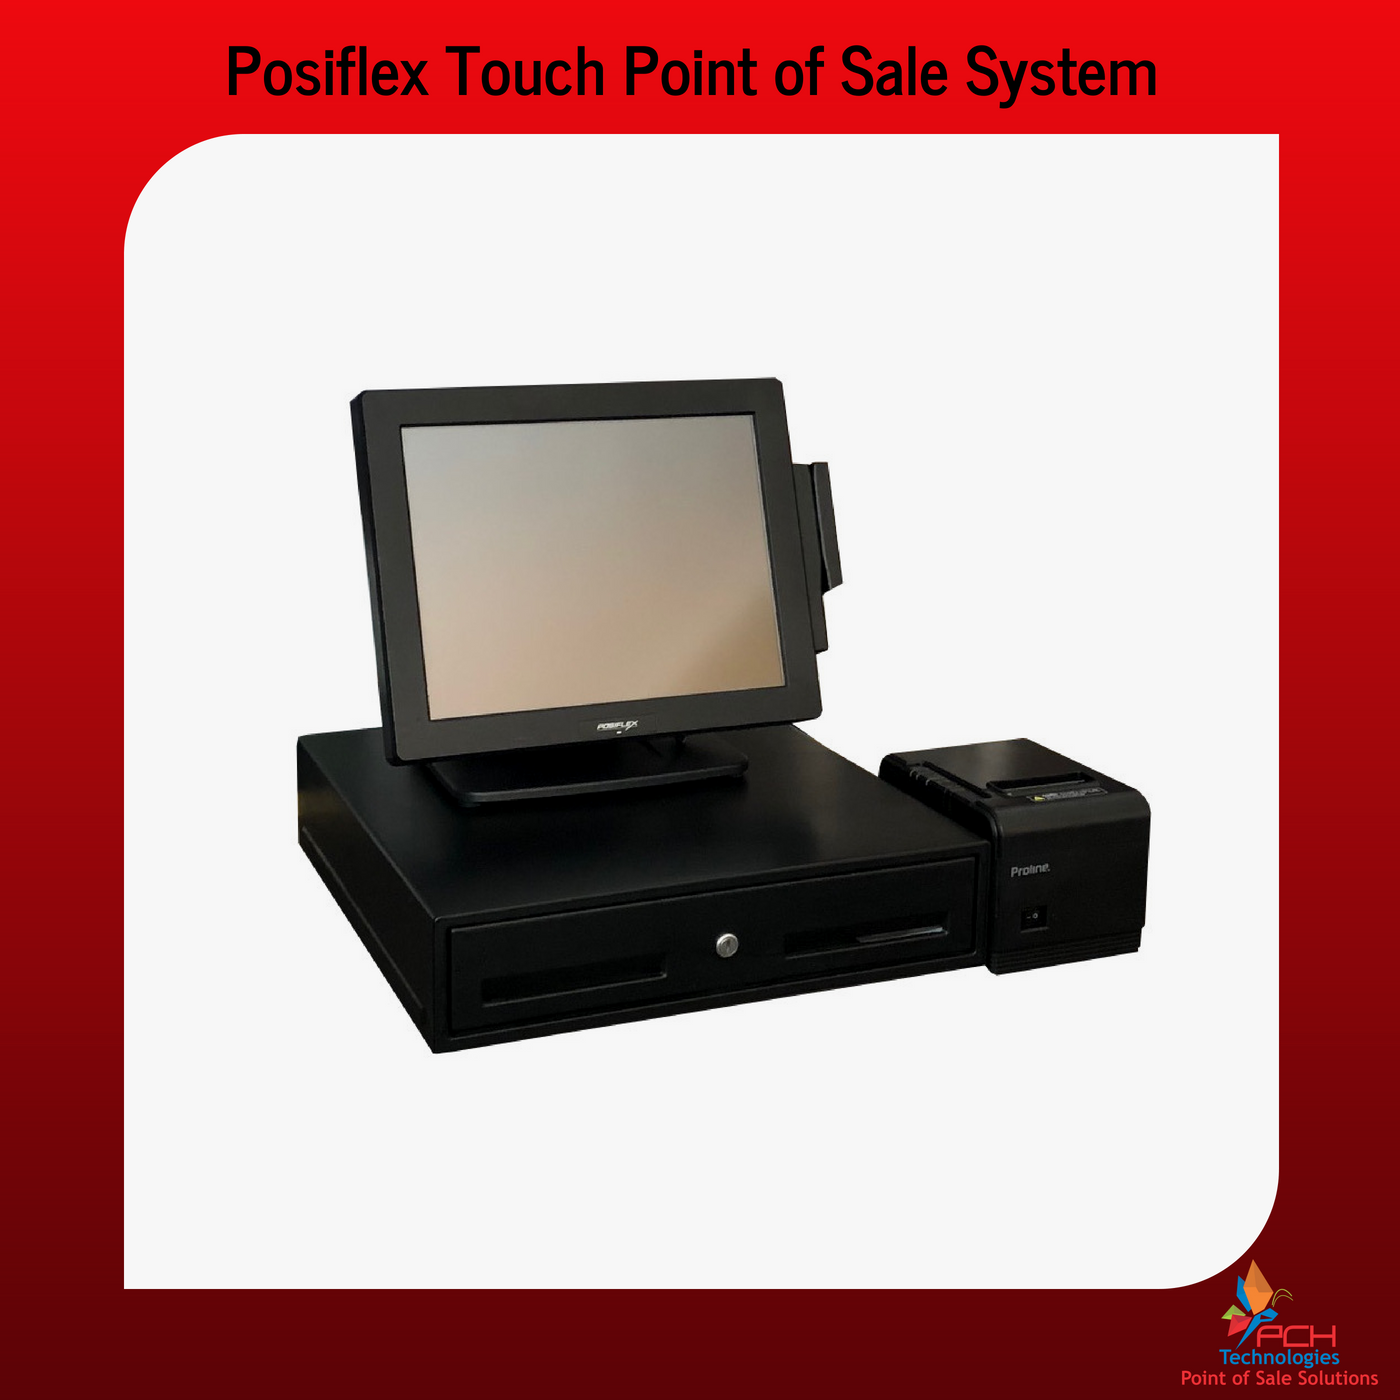 Posiflex Touch Screen Point of Sale System (Refurb)